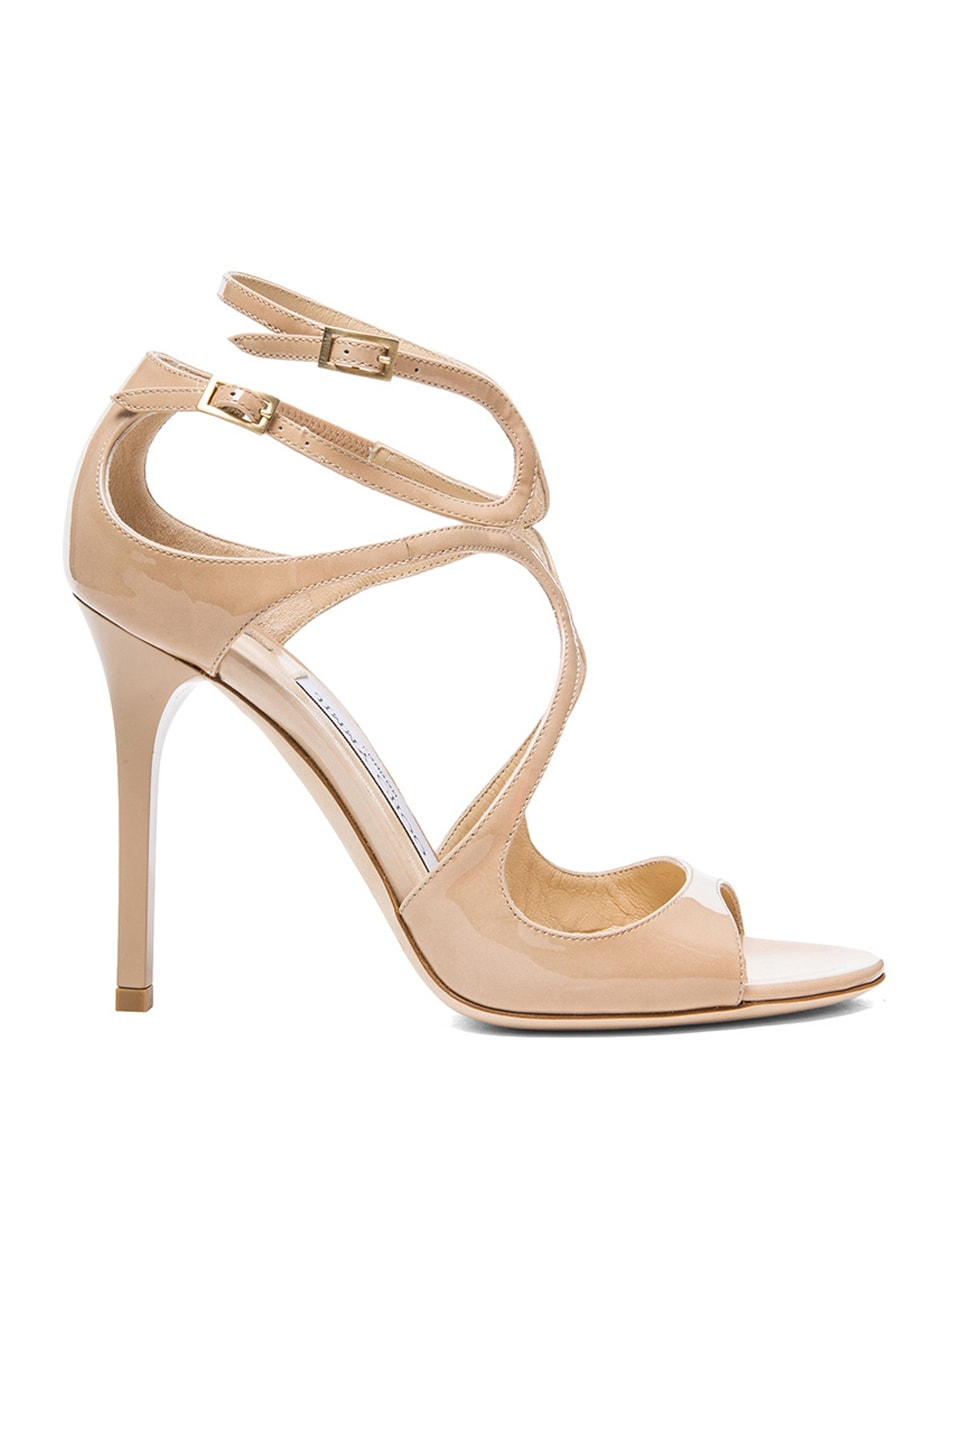 Image 1 of Jimmy Choo Lang Leather Heeled Sandals in Nude